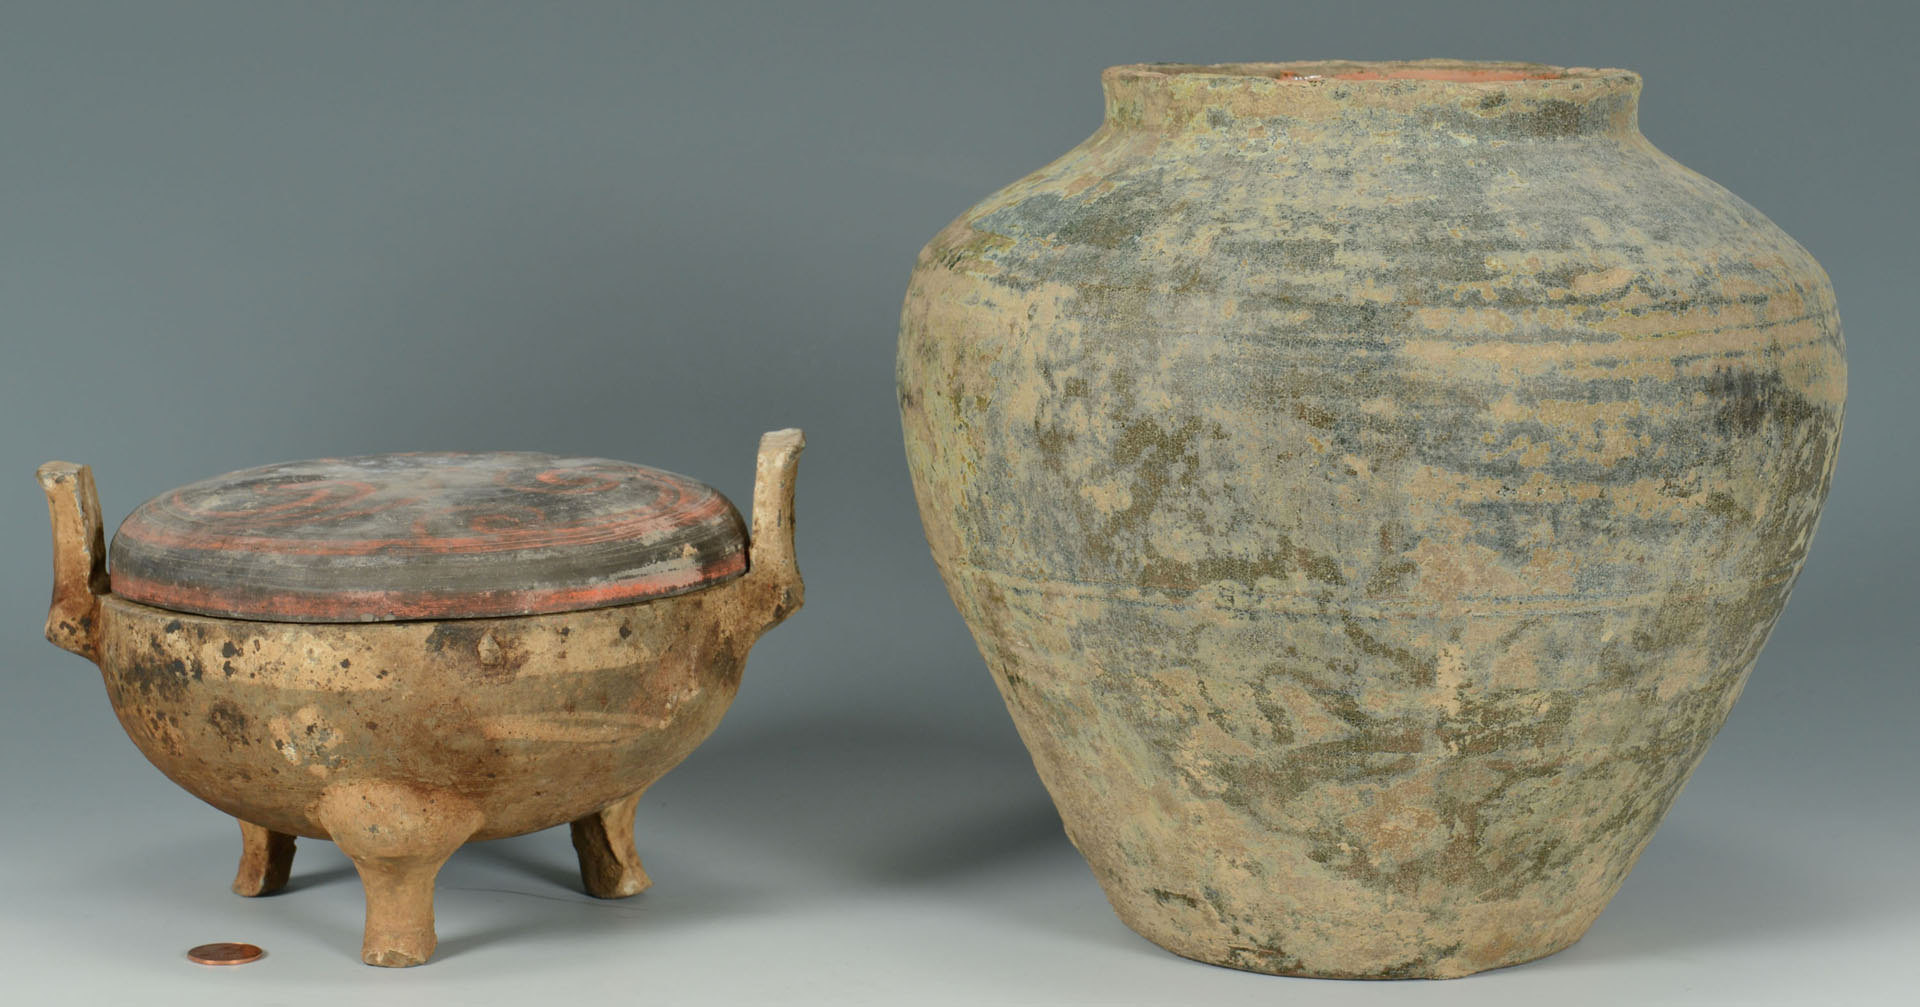 han dynasty vase value of lot 3088300 2 chinese han dynasty pottery vessels within 3088300 1